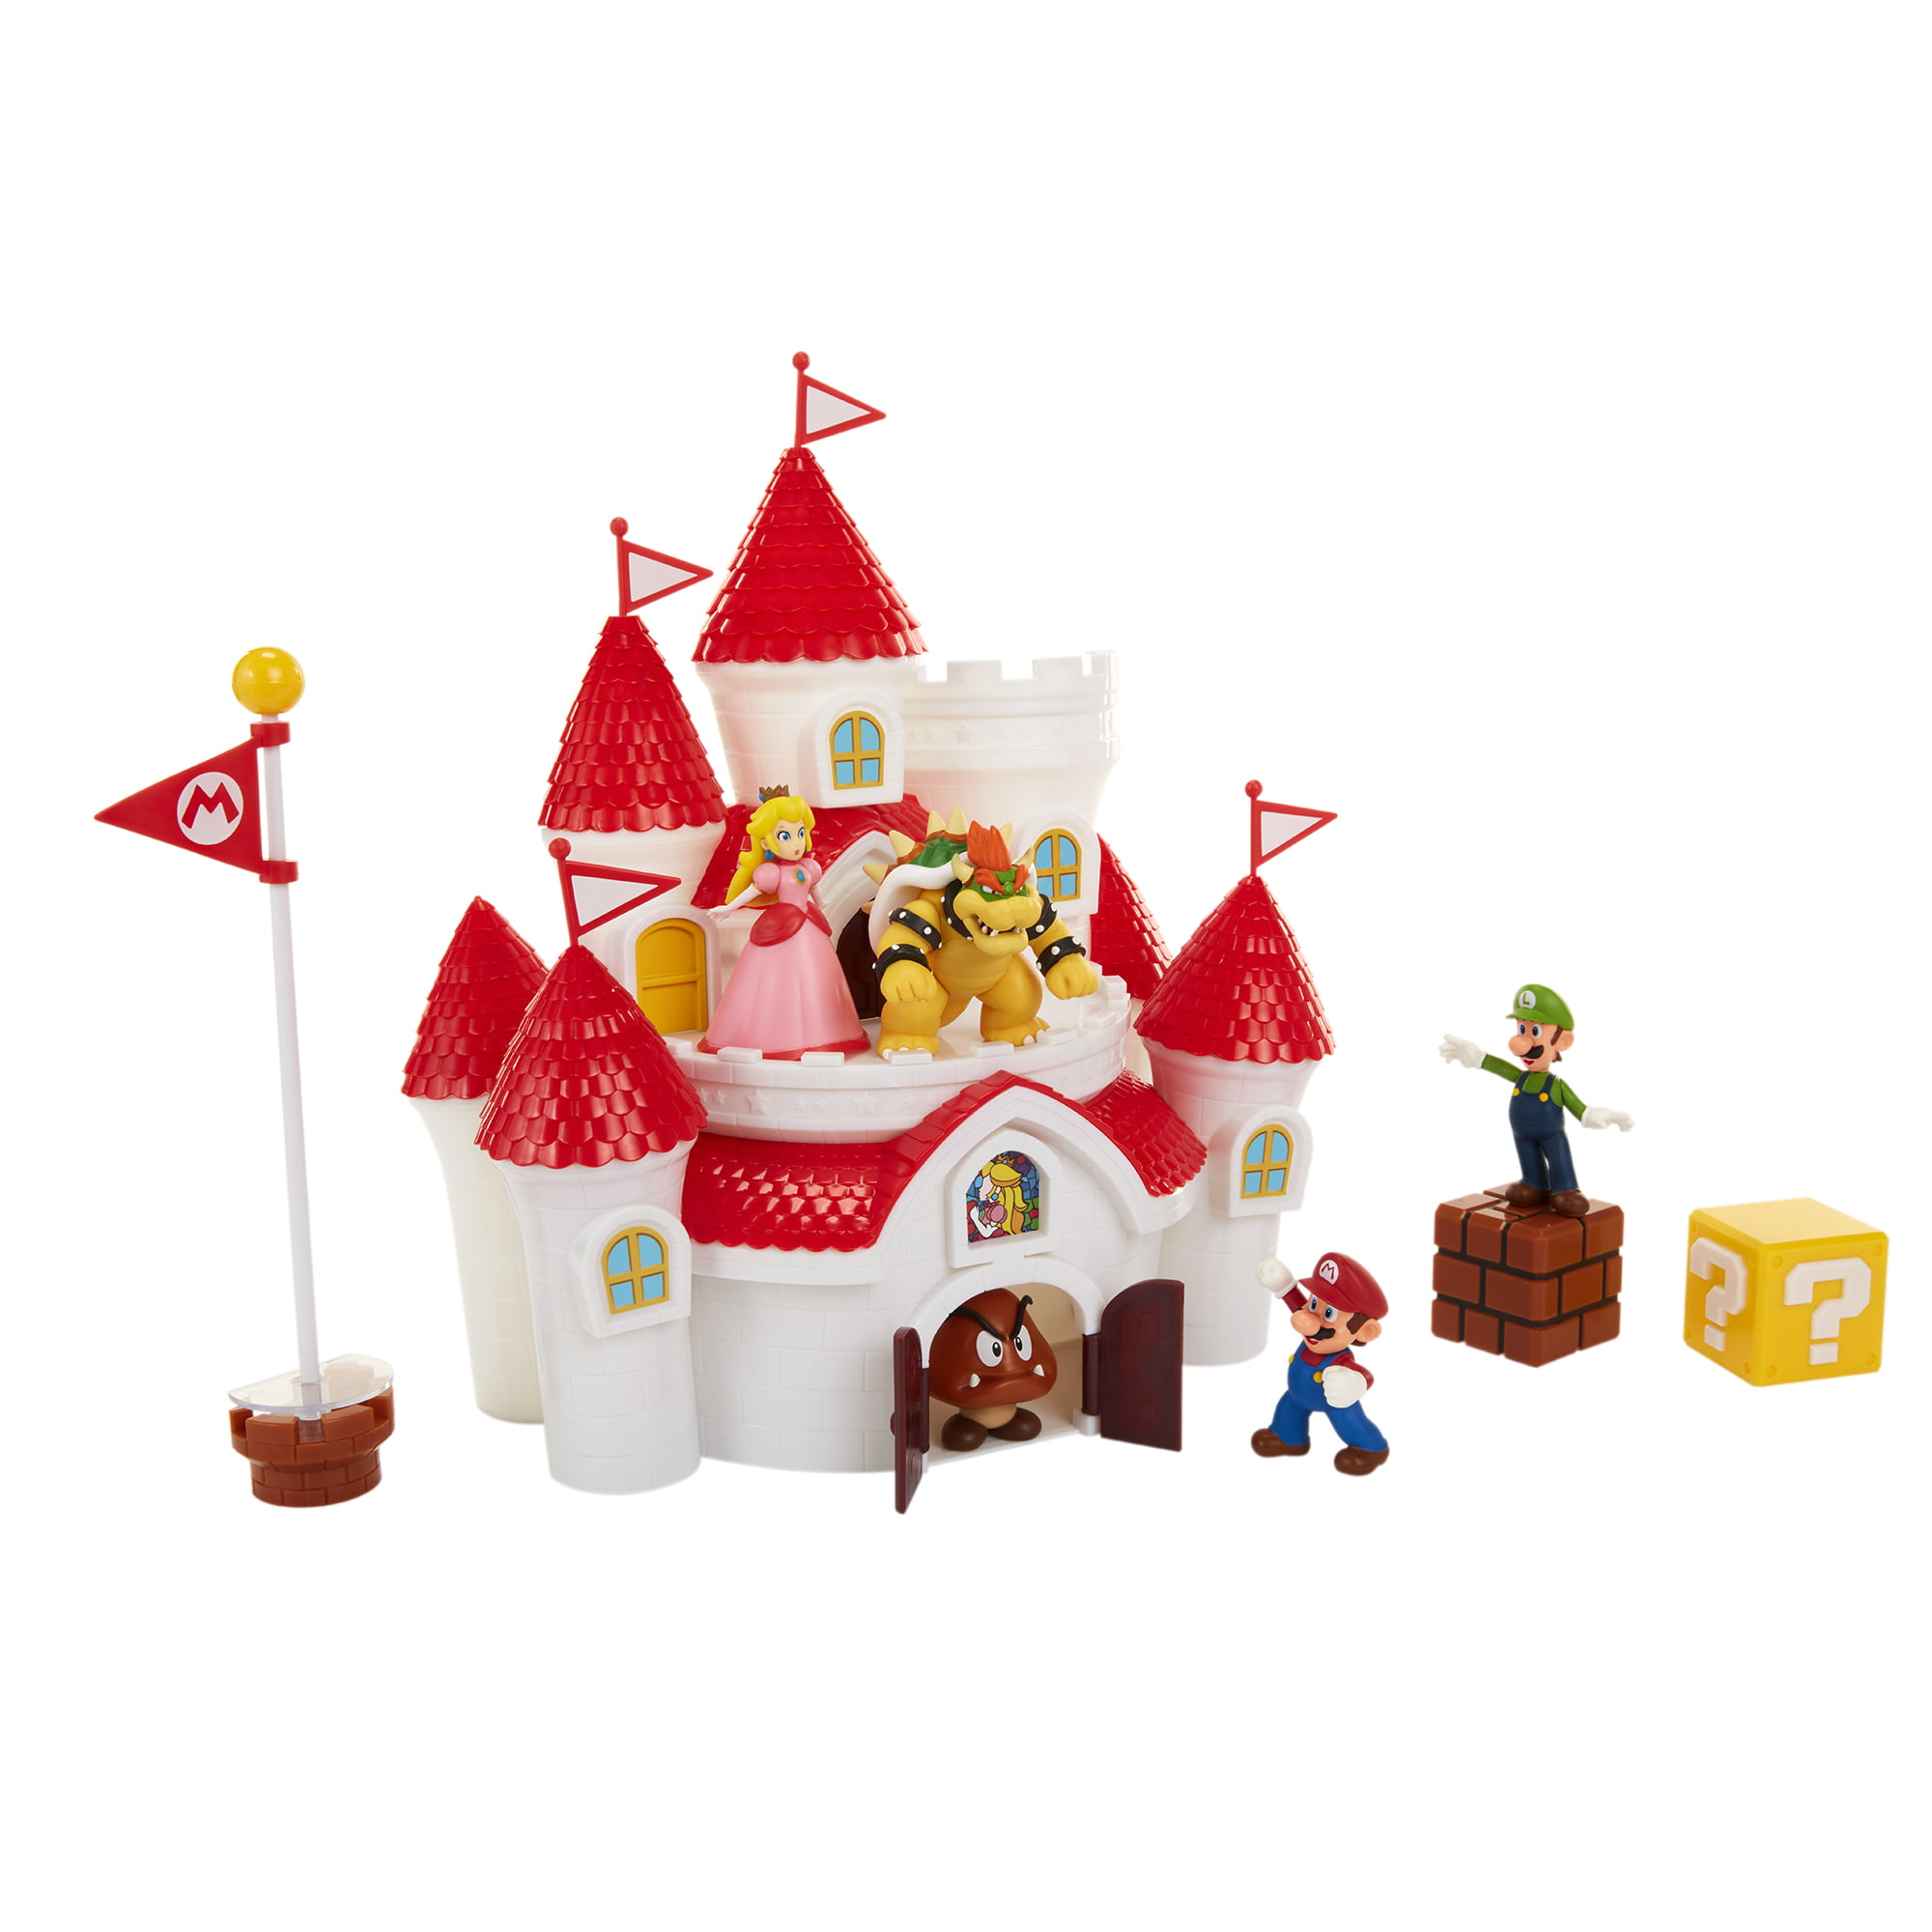 Nintendo Super Mario Deluxe Mushroom Kingdom Castle Playset With 5